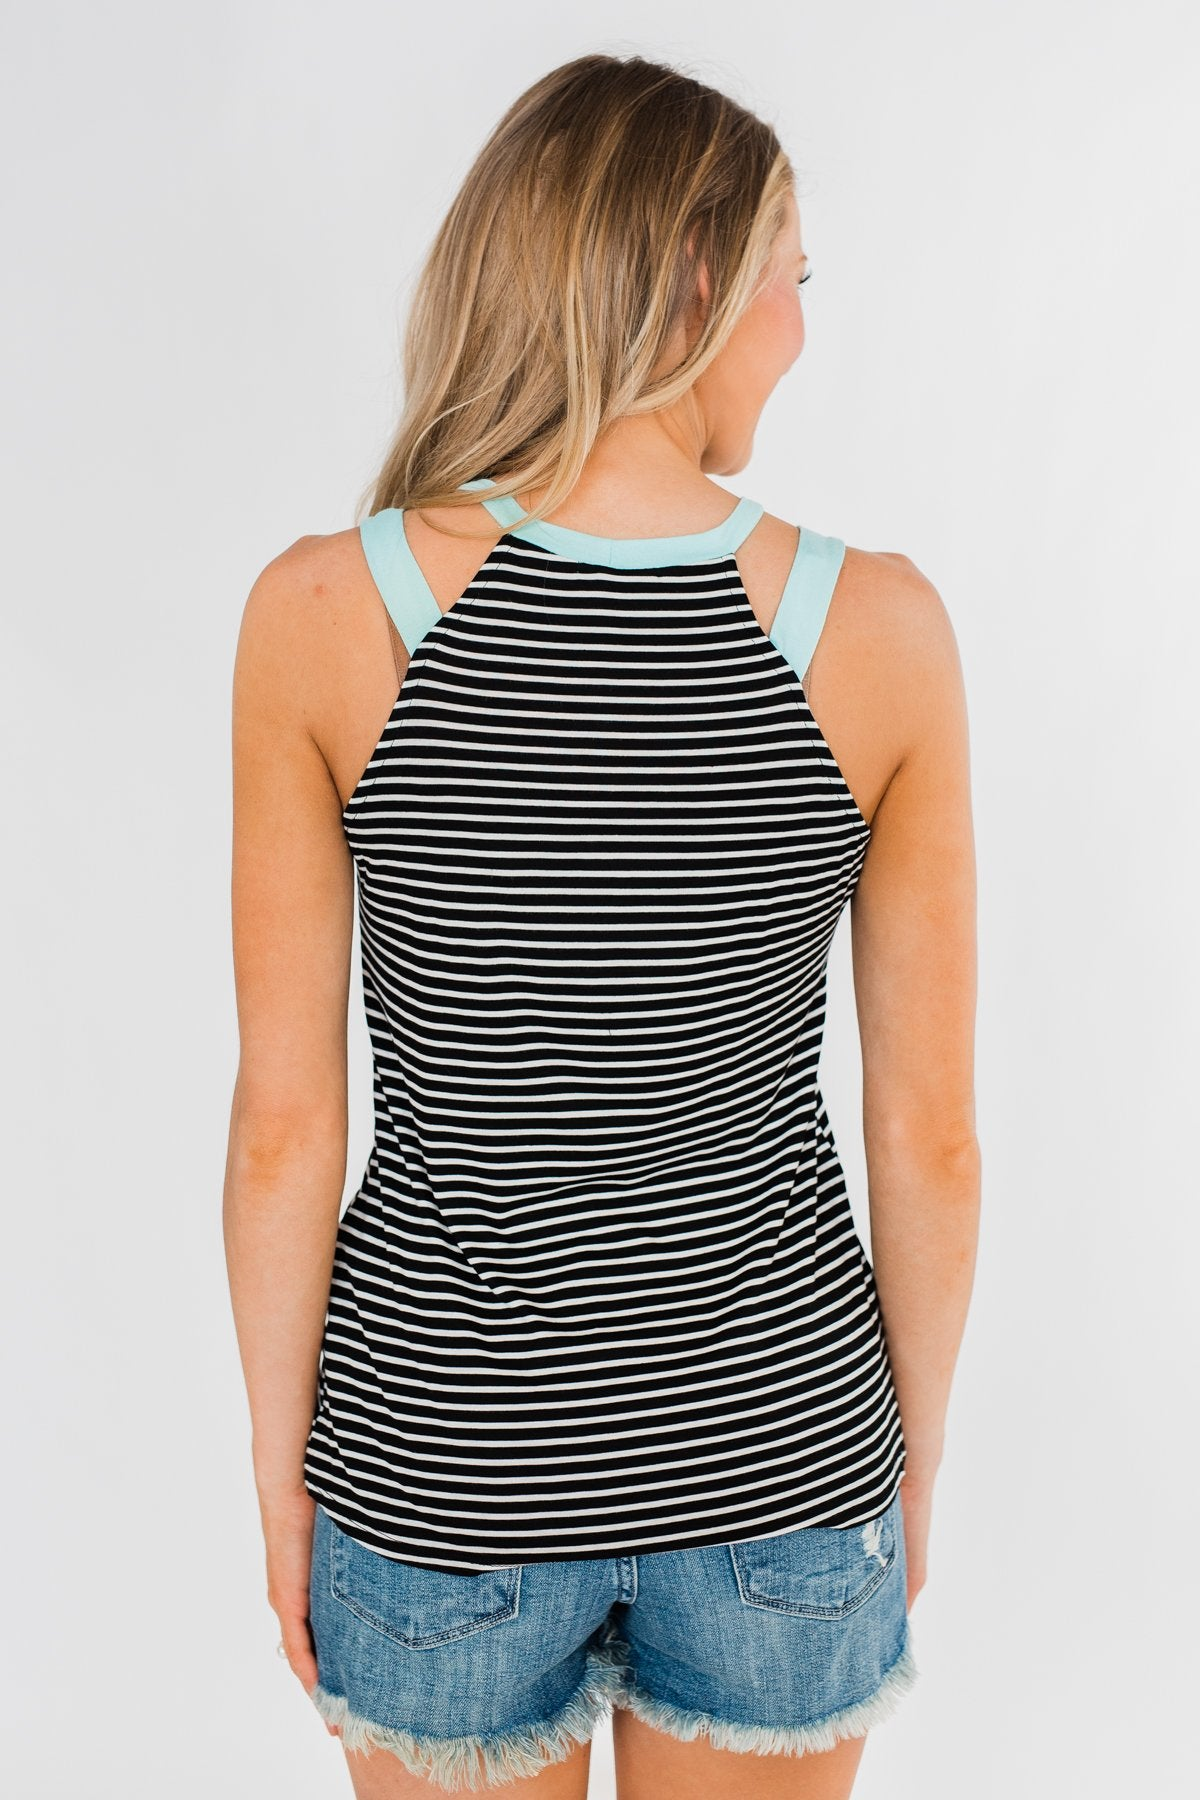 All I Need Striped Tank Top- Aqua & Black